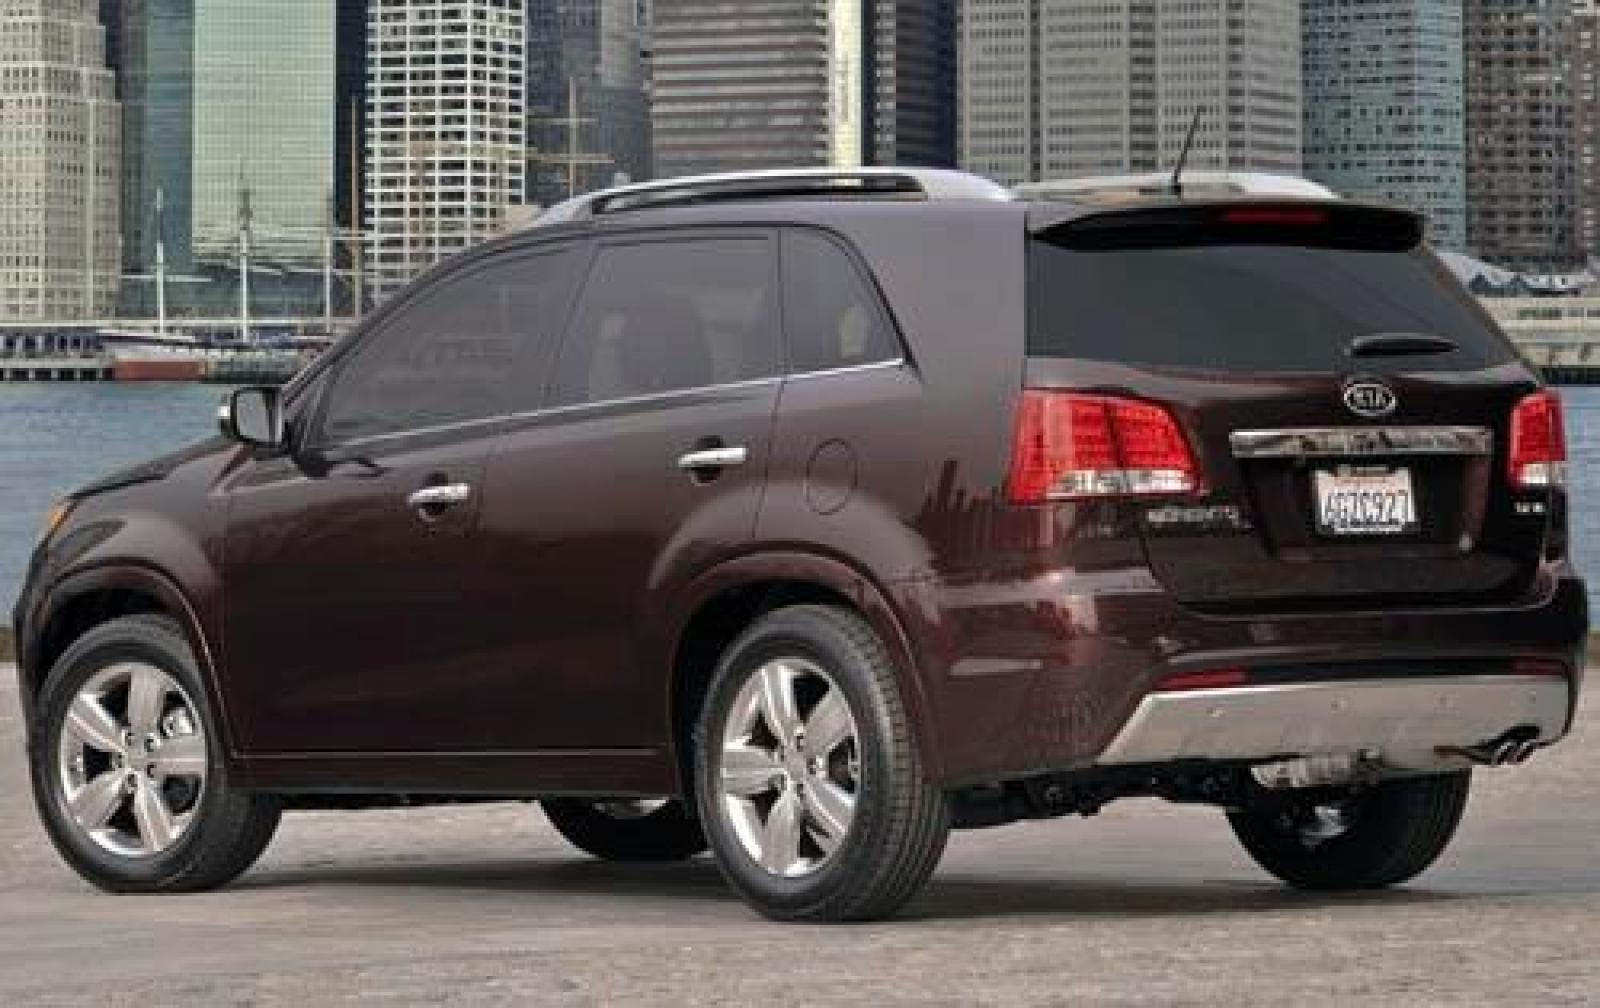 2011 kia sorento information and photos zombiedrive. Black Bedroom Furniture Sets. Home Design Ideas